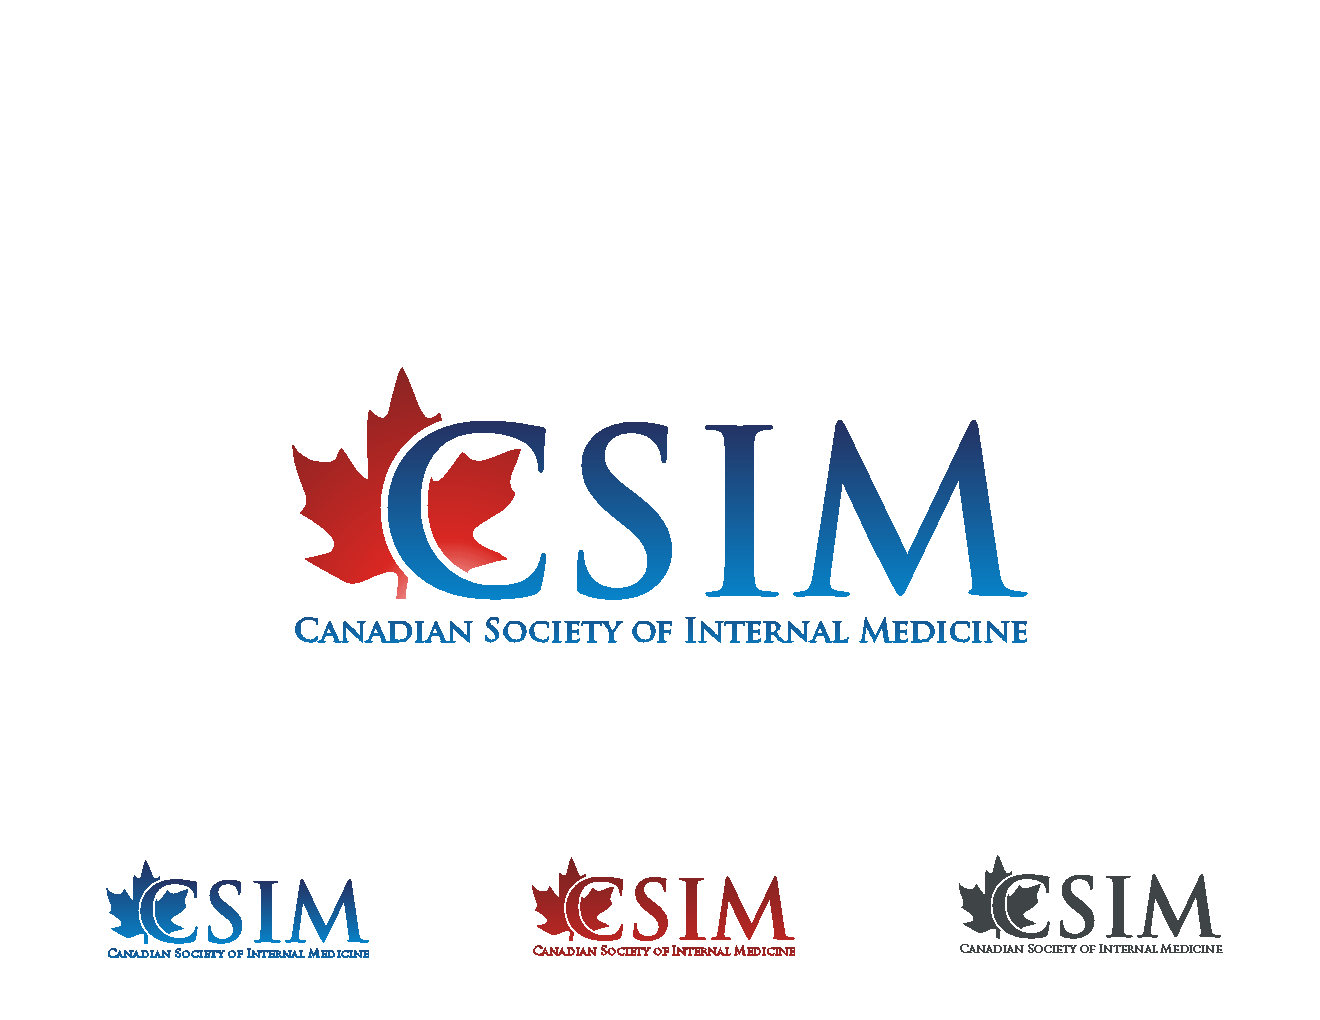 New logo wanted for CSIM